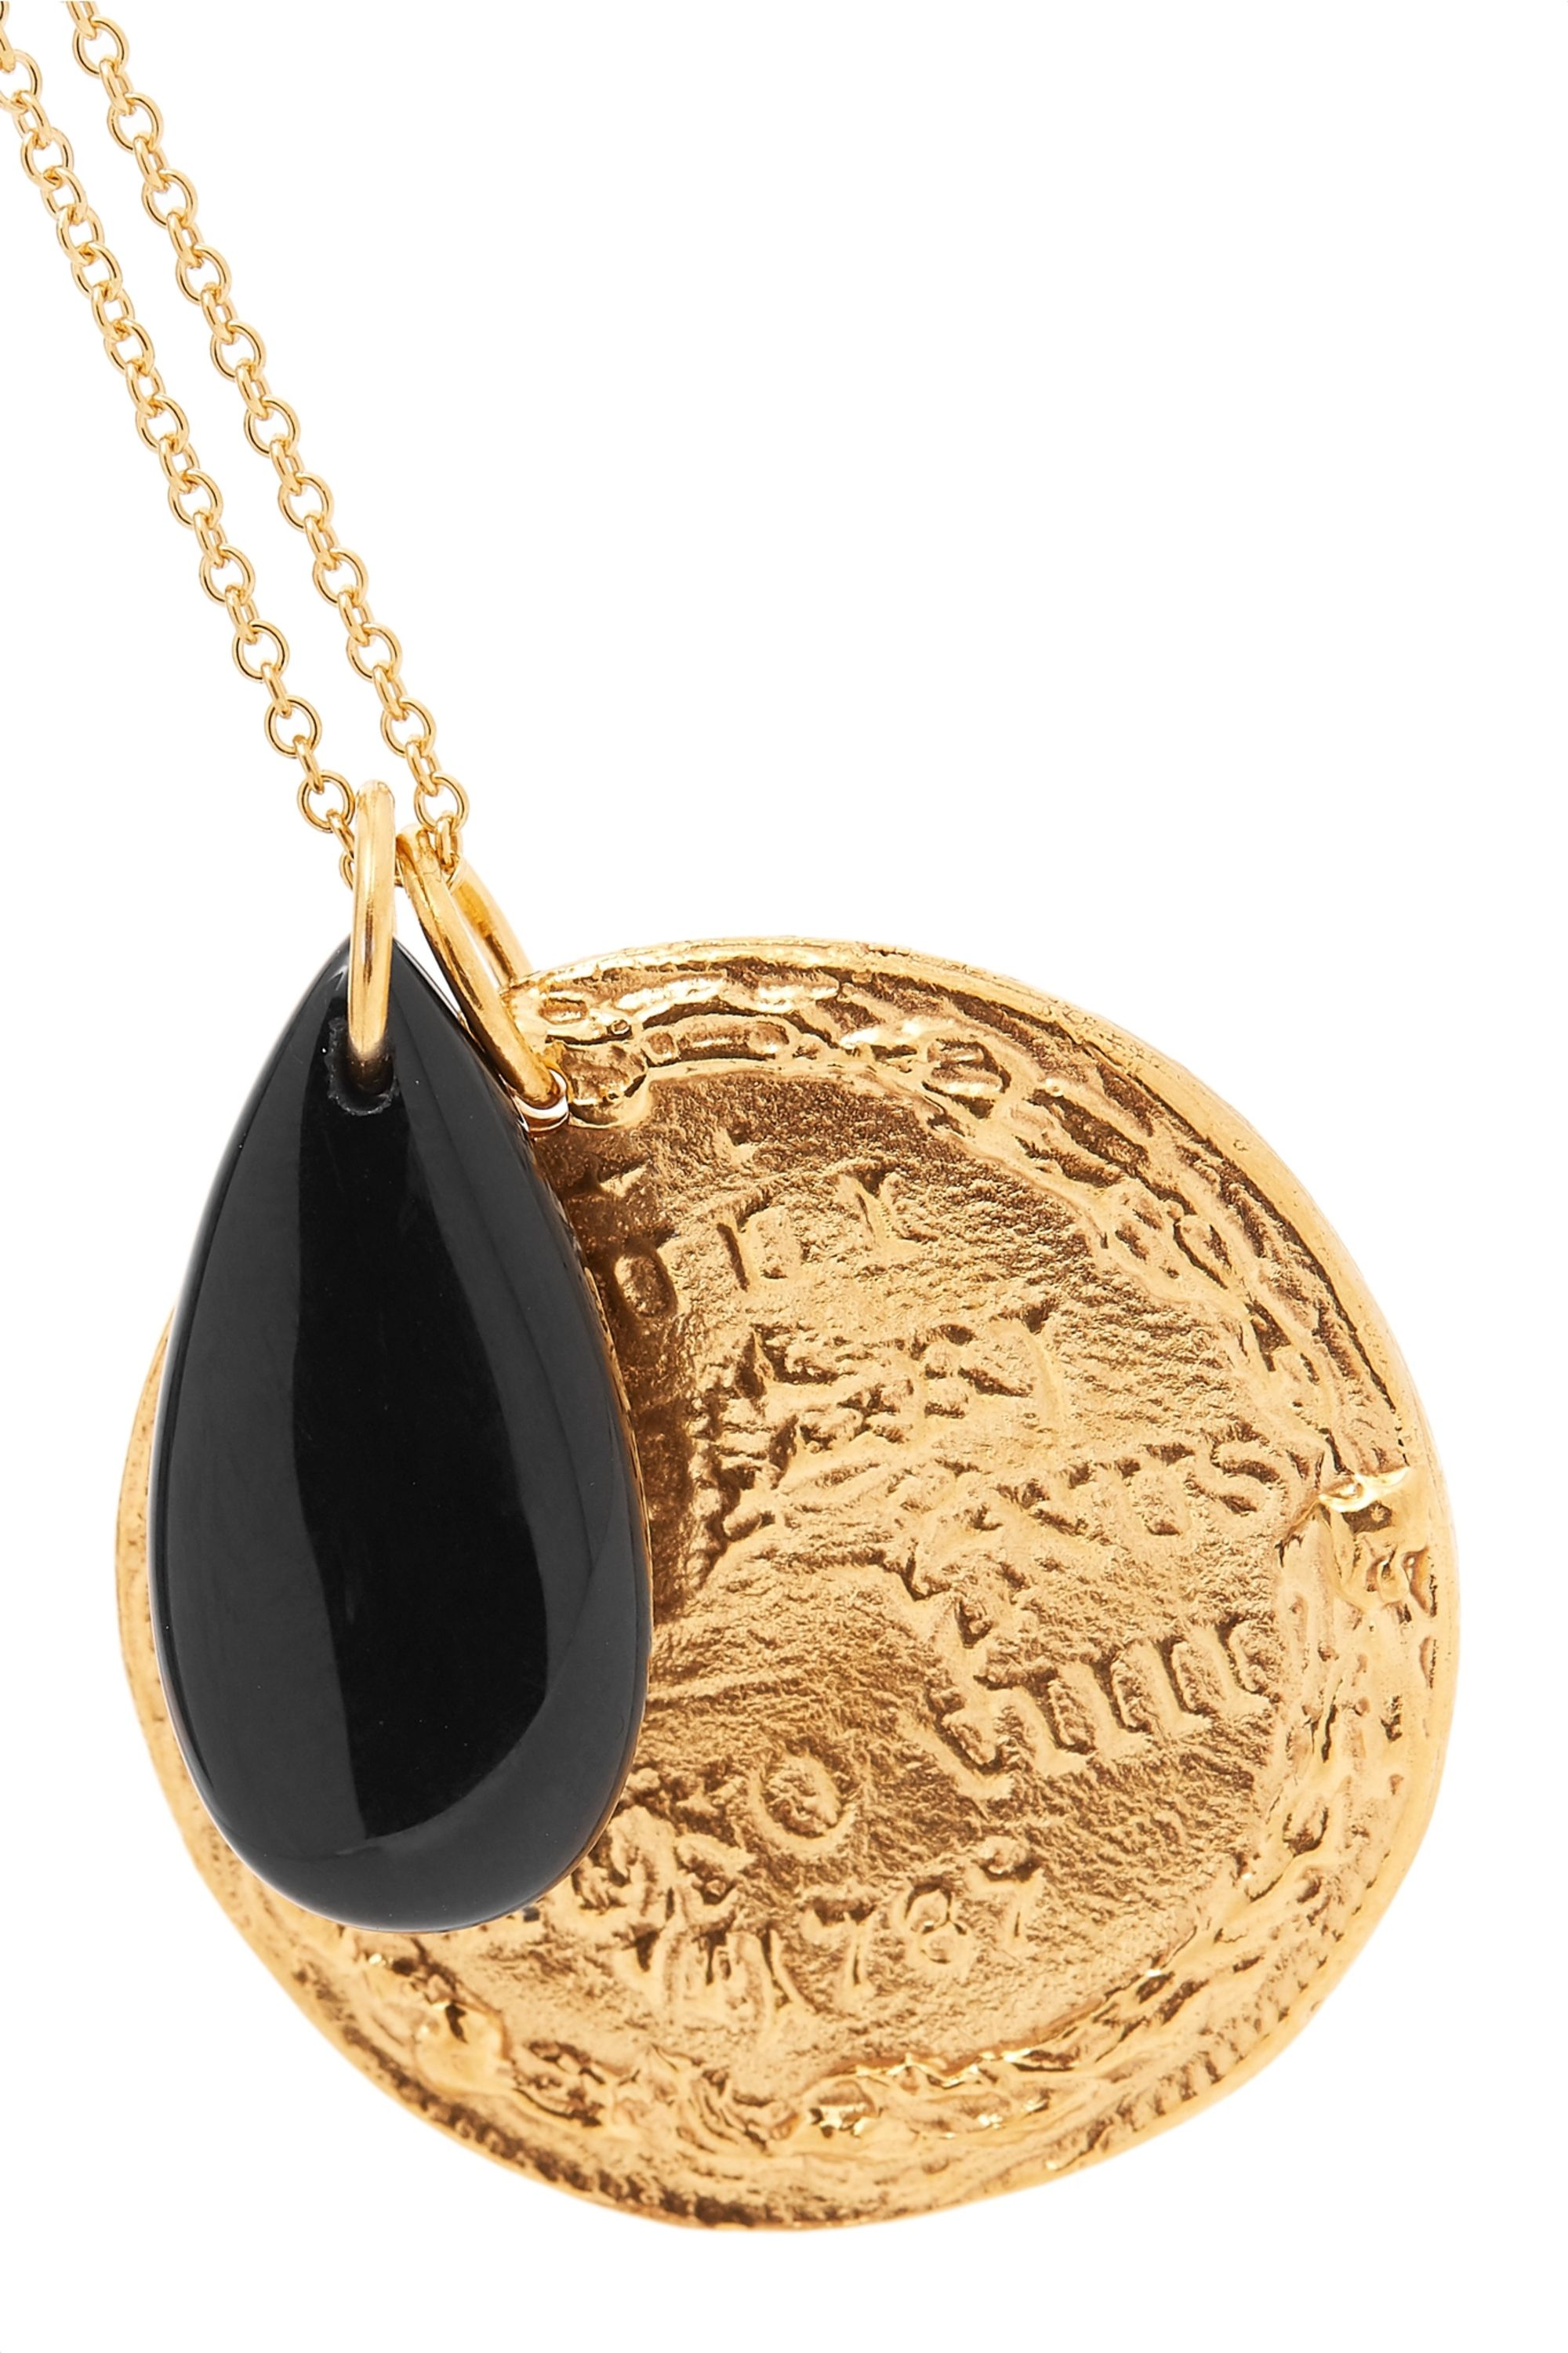 Alighieri Gold-plated onyx necklace